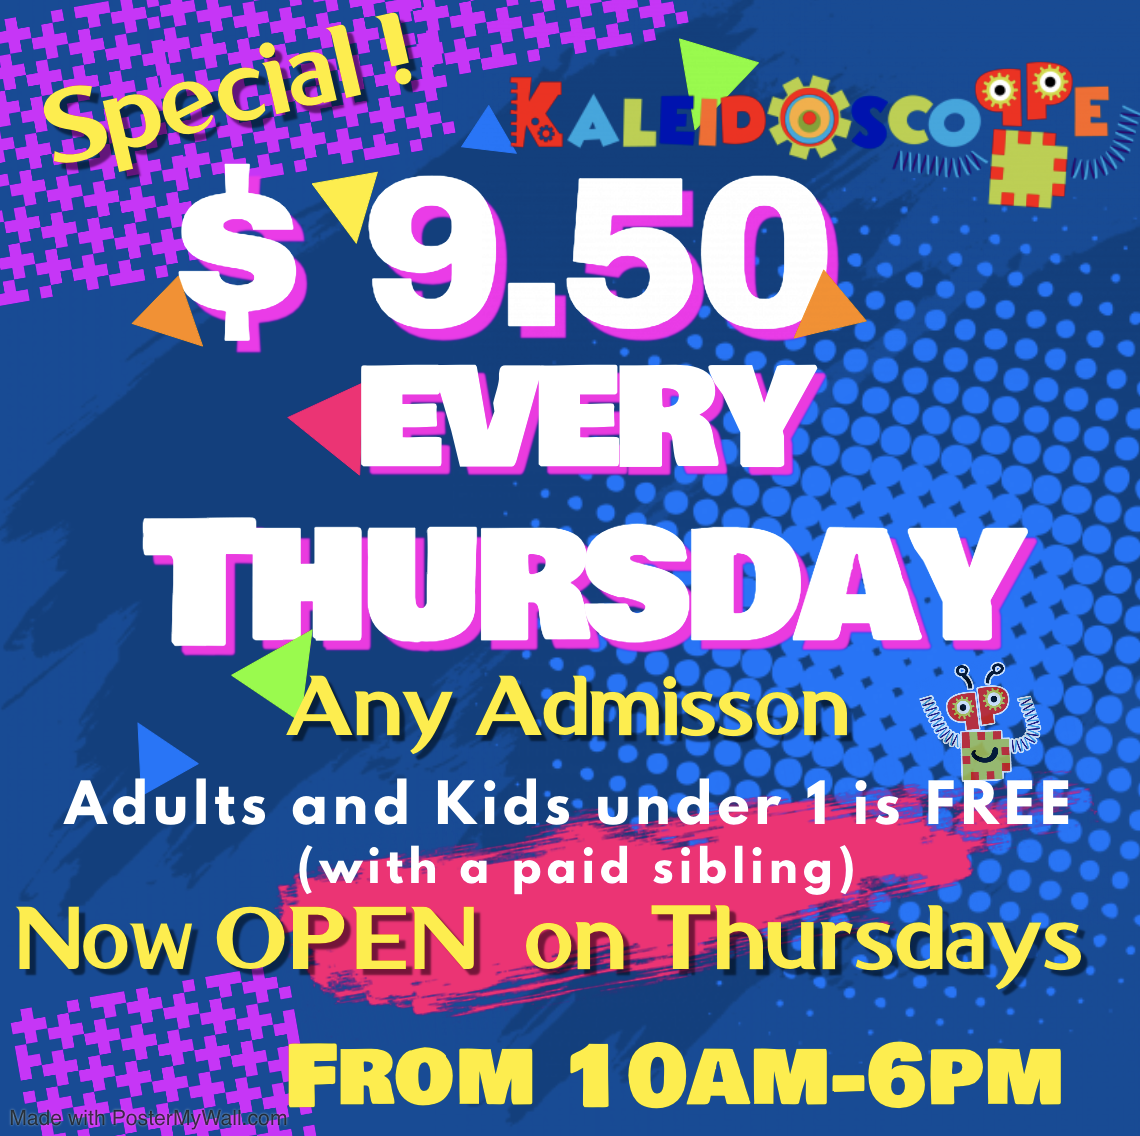 Indoor playground special promotion